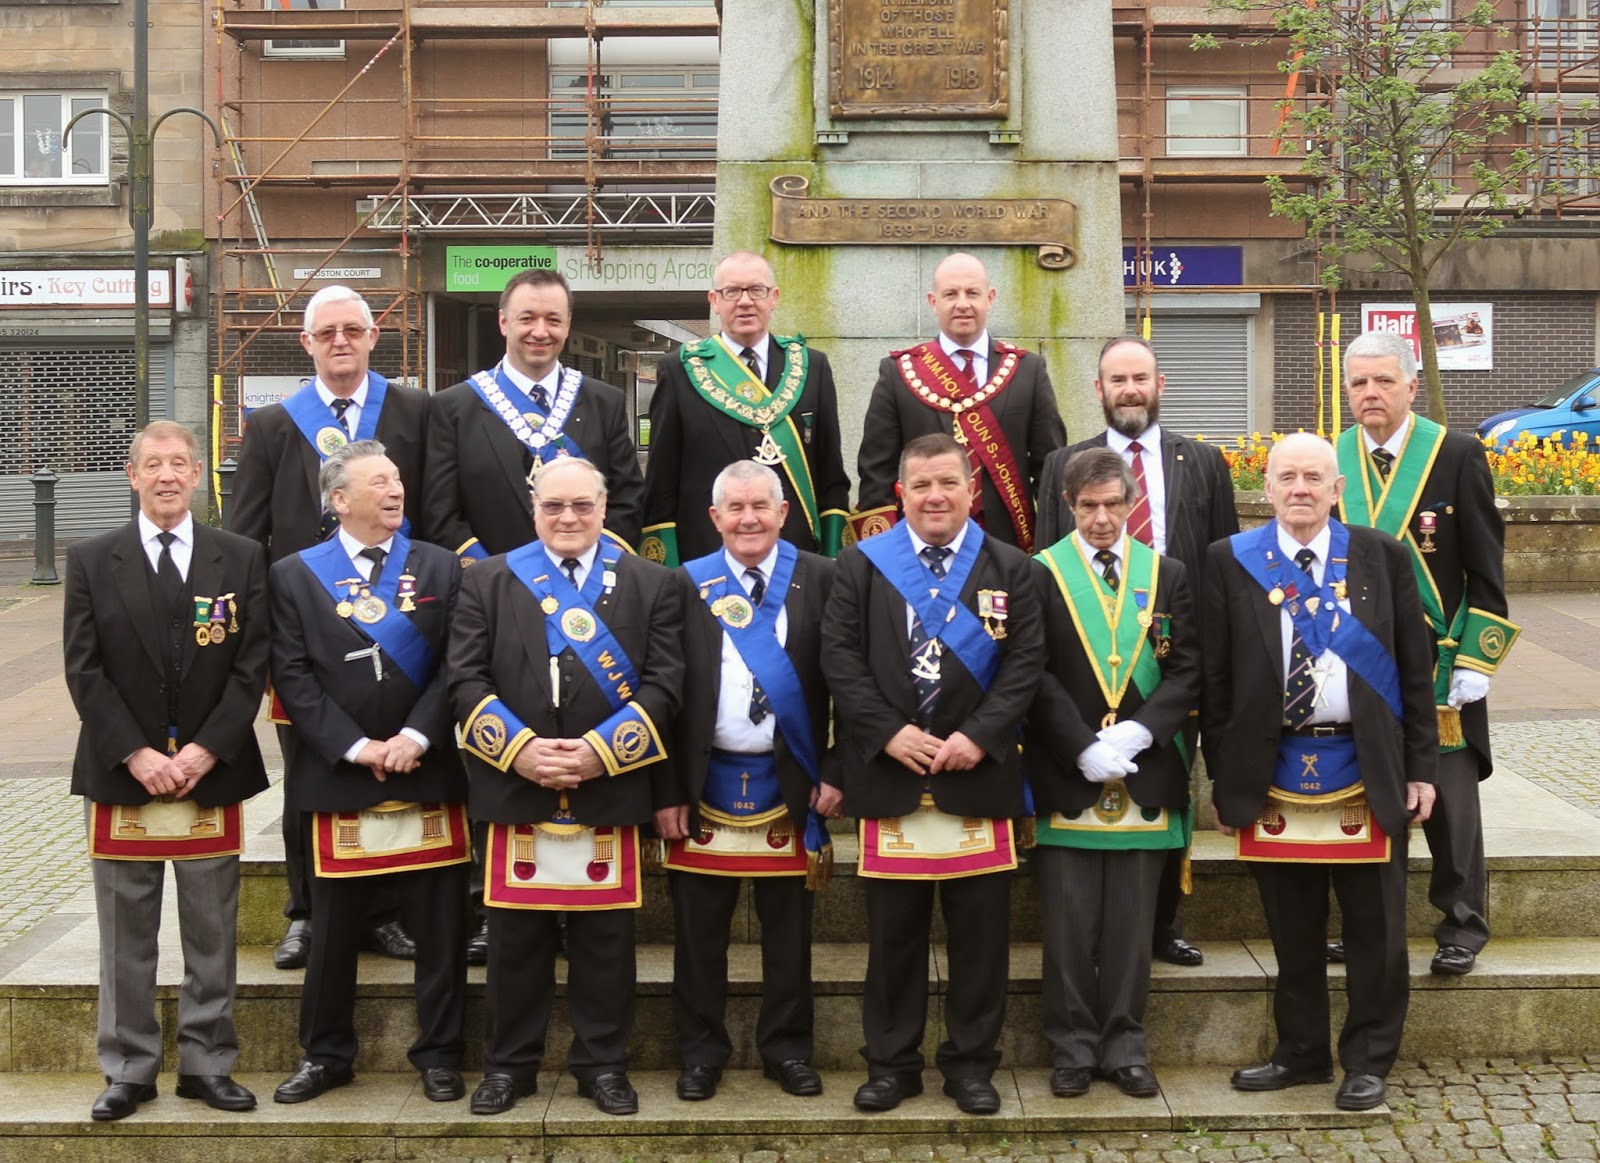 LODGE CRAIGENDS RE-DEDICATES WAR MEMORIAL | PGLRE News